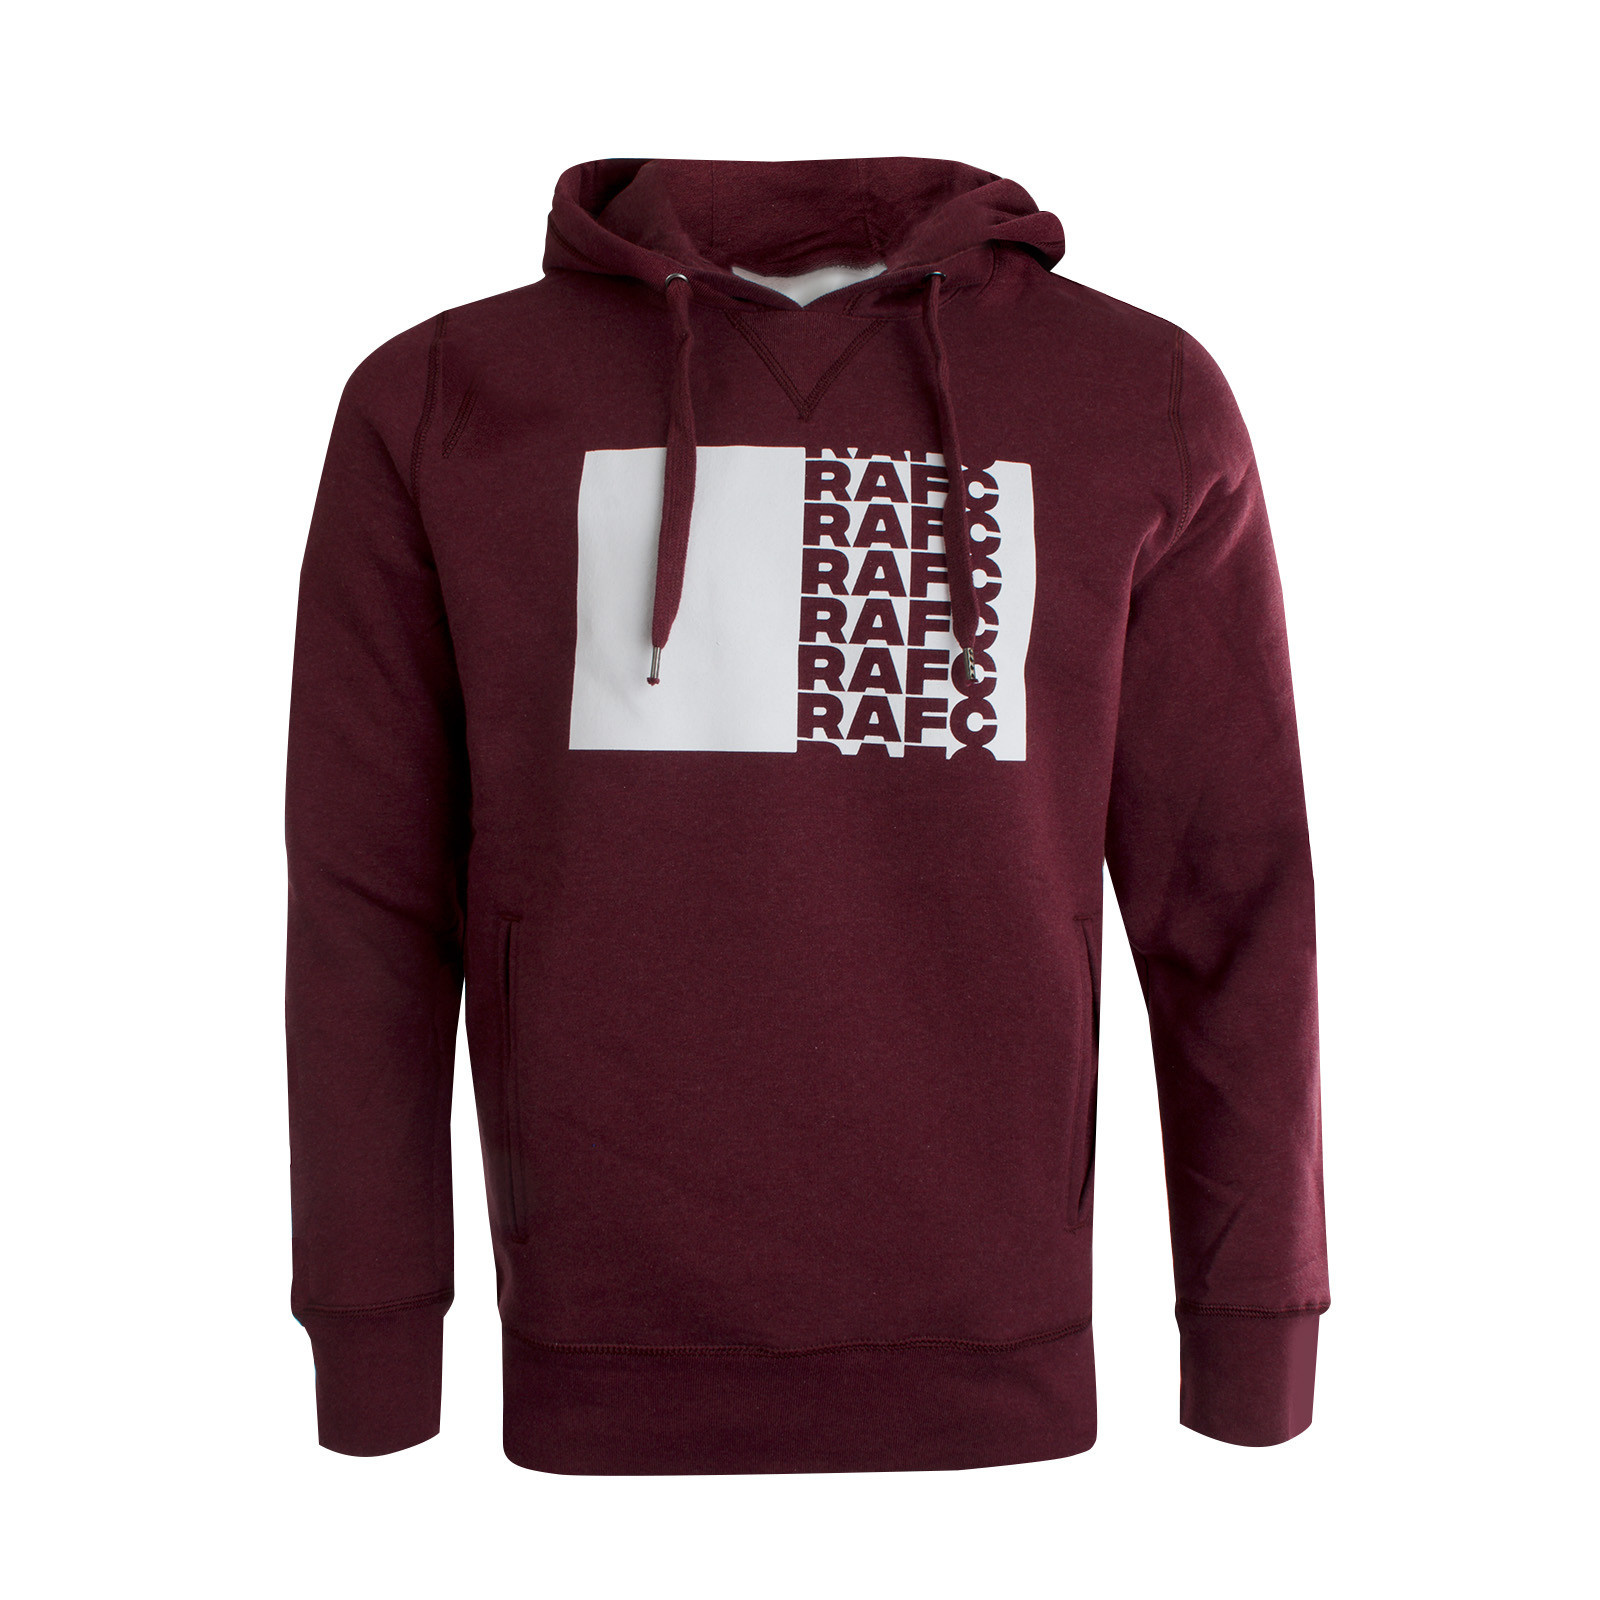 RAFC Hoodie Wine Heather-3